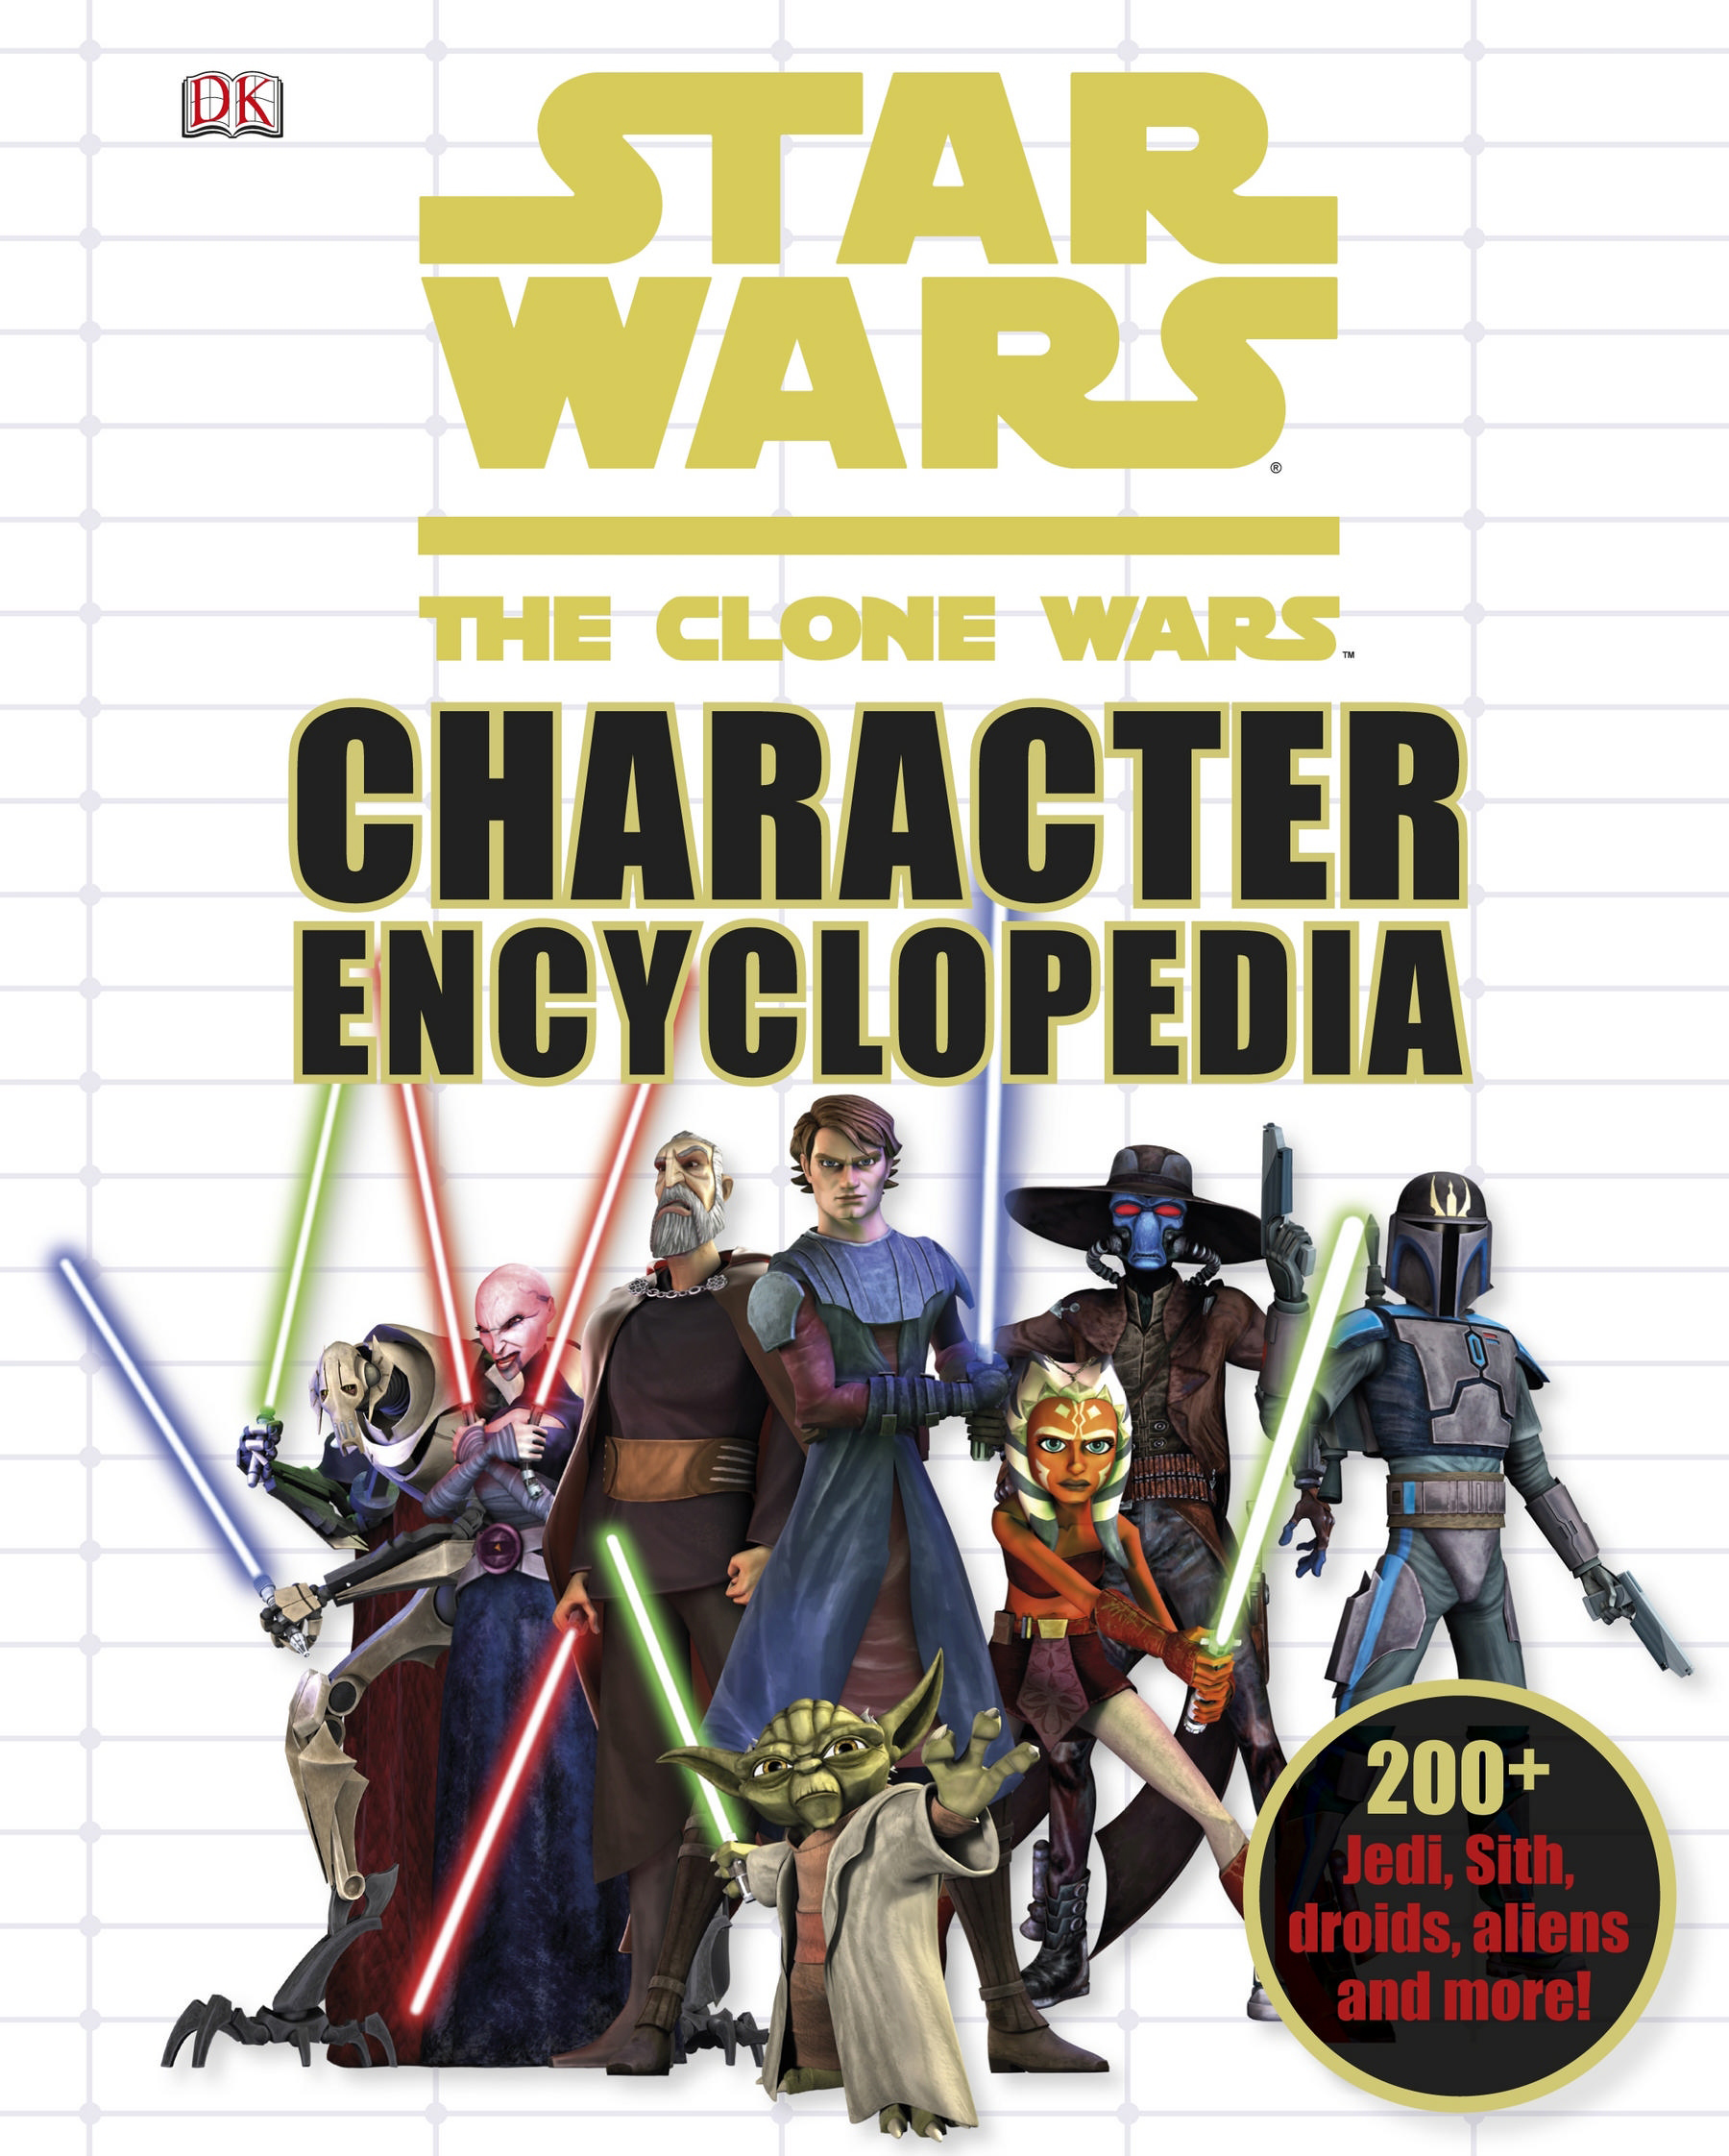 Star Wars Clone Wars Characters Names The Clone Wars Character